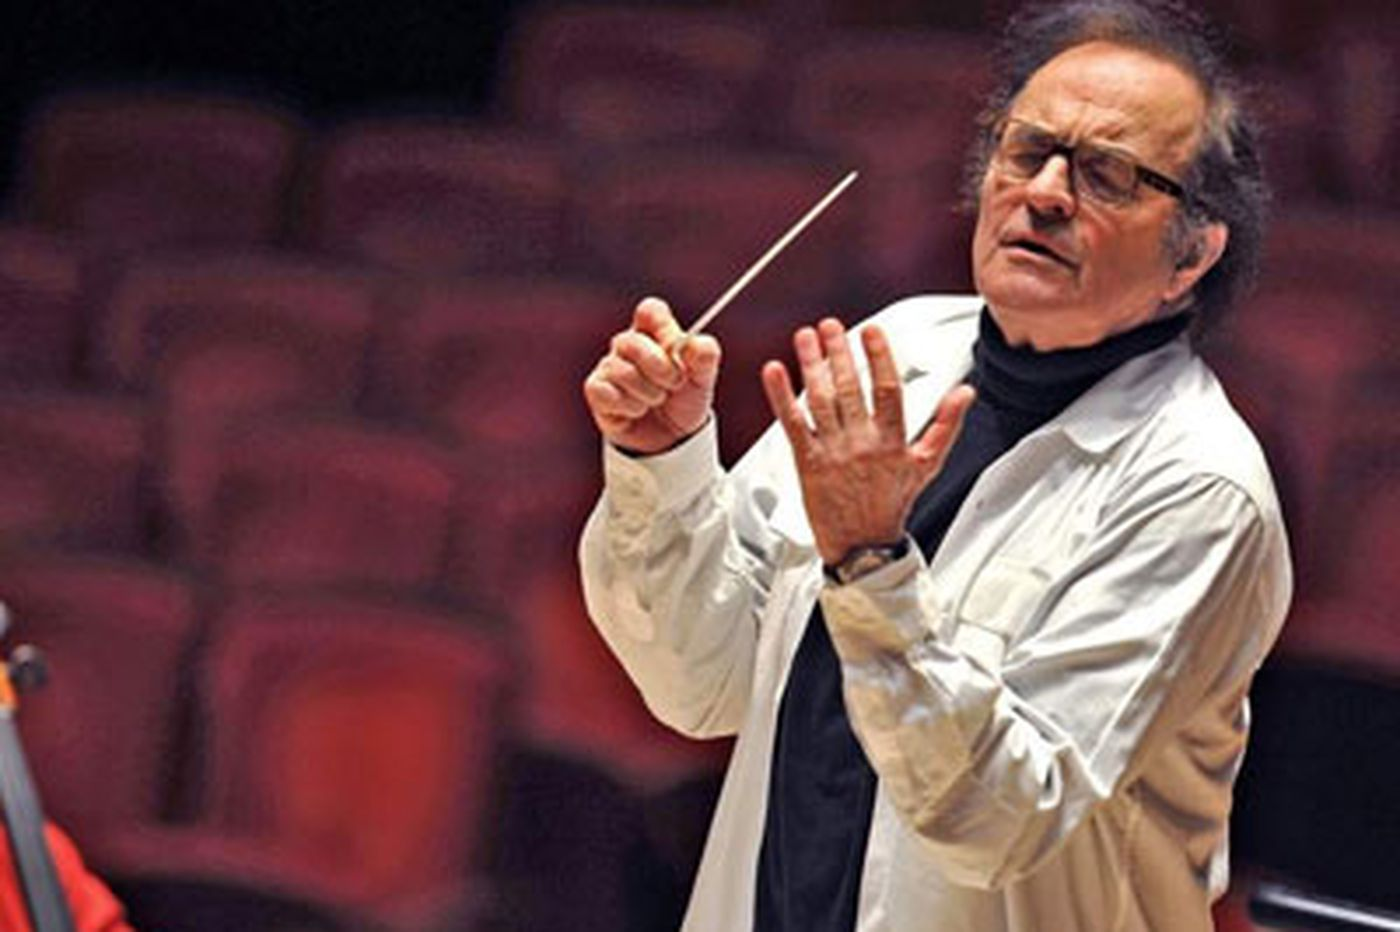 Dutoit departs, after playing key role in Philadelphia Orchestra's survival